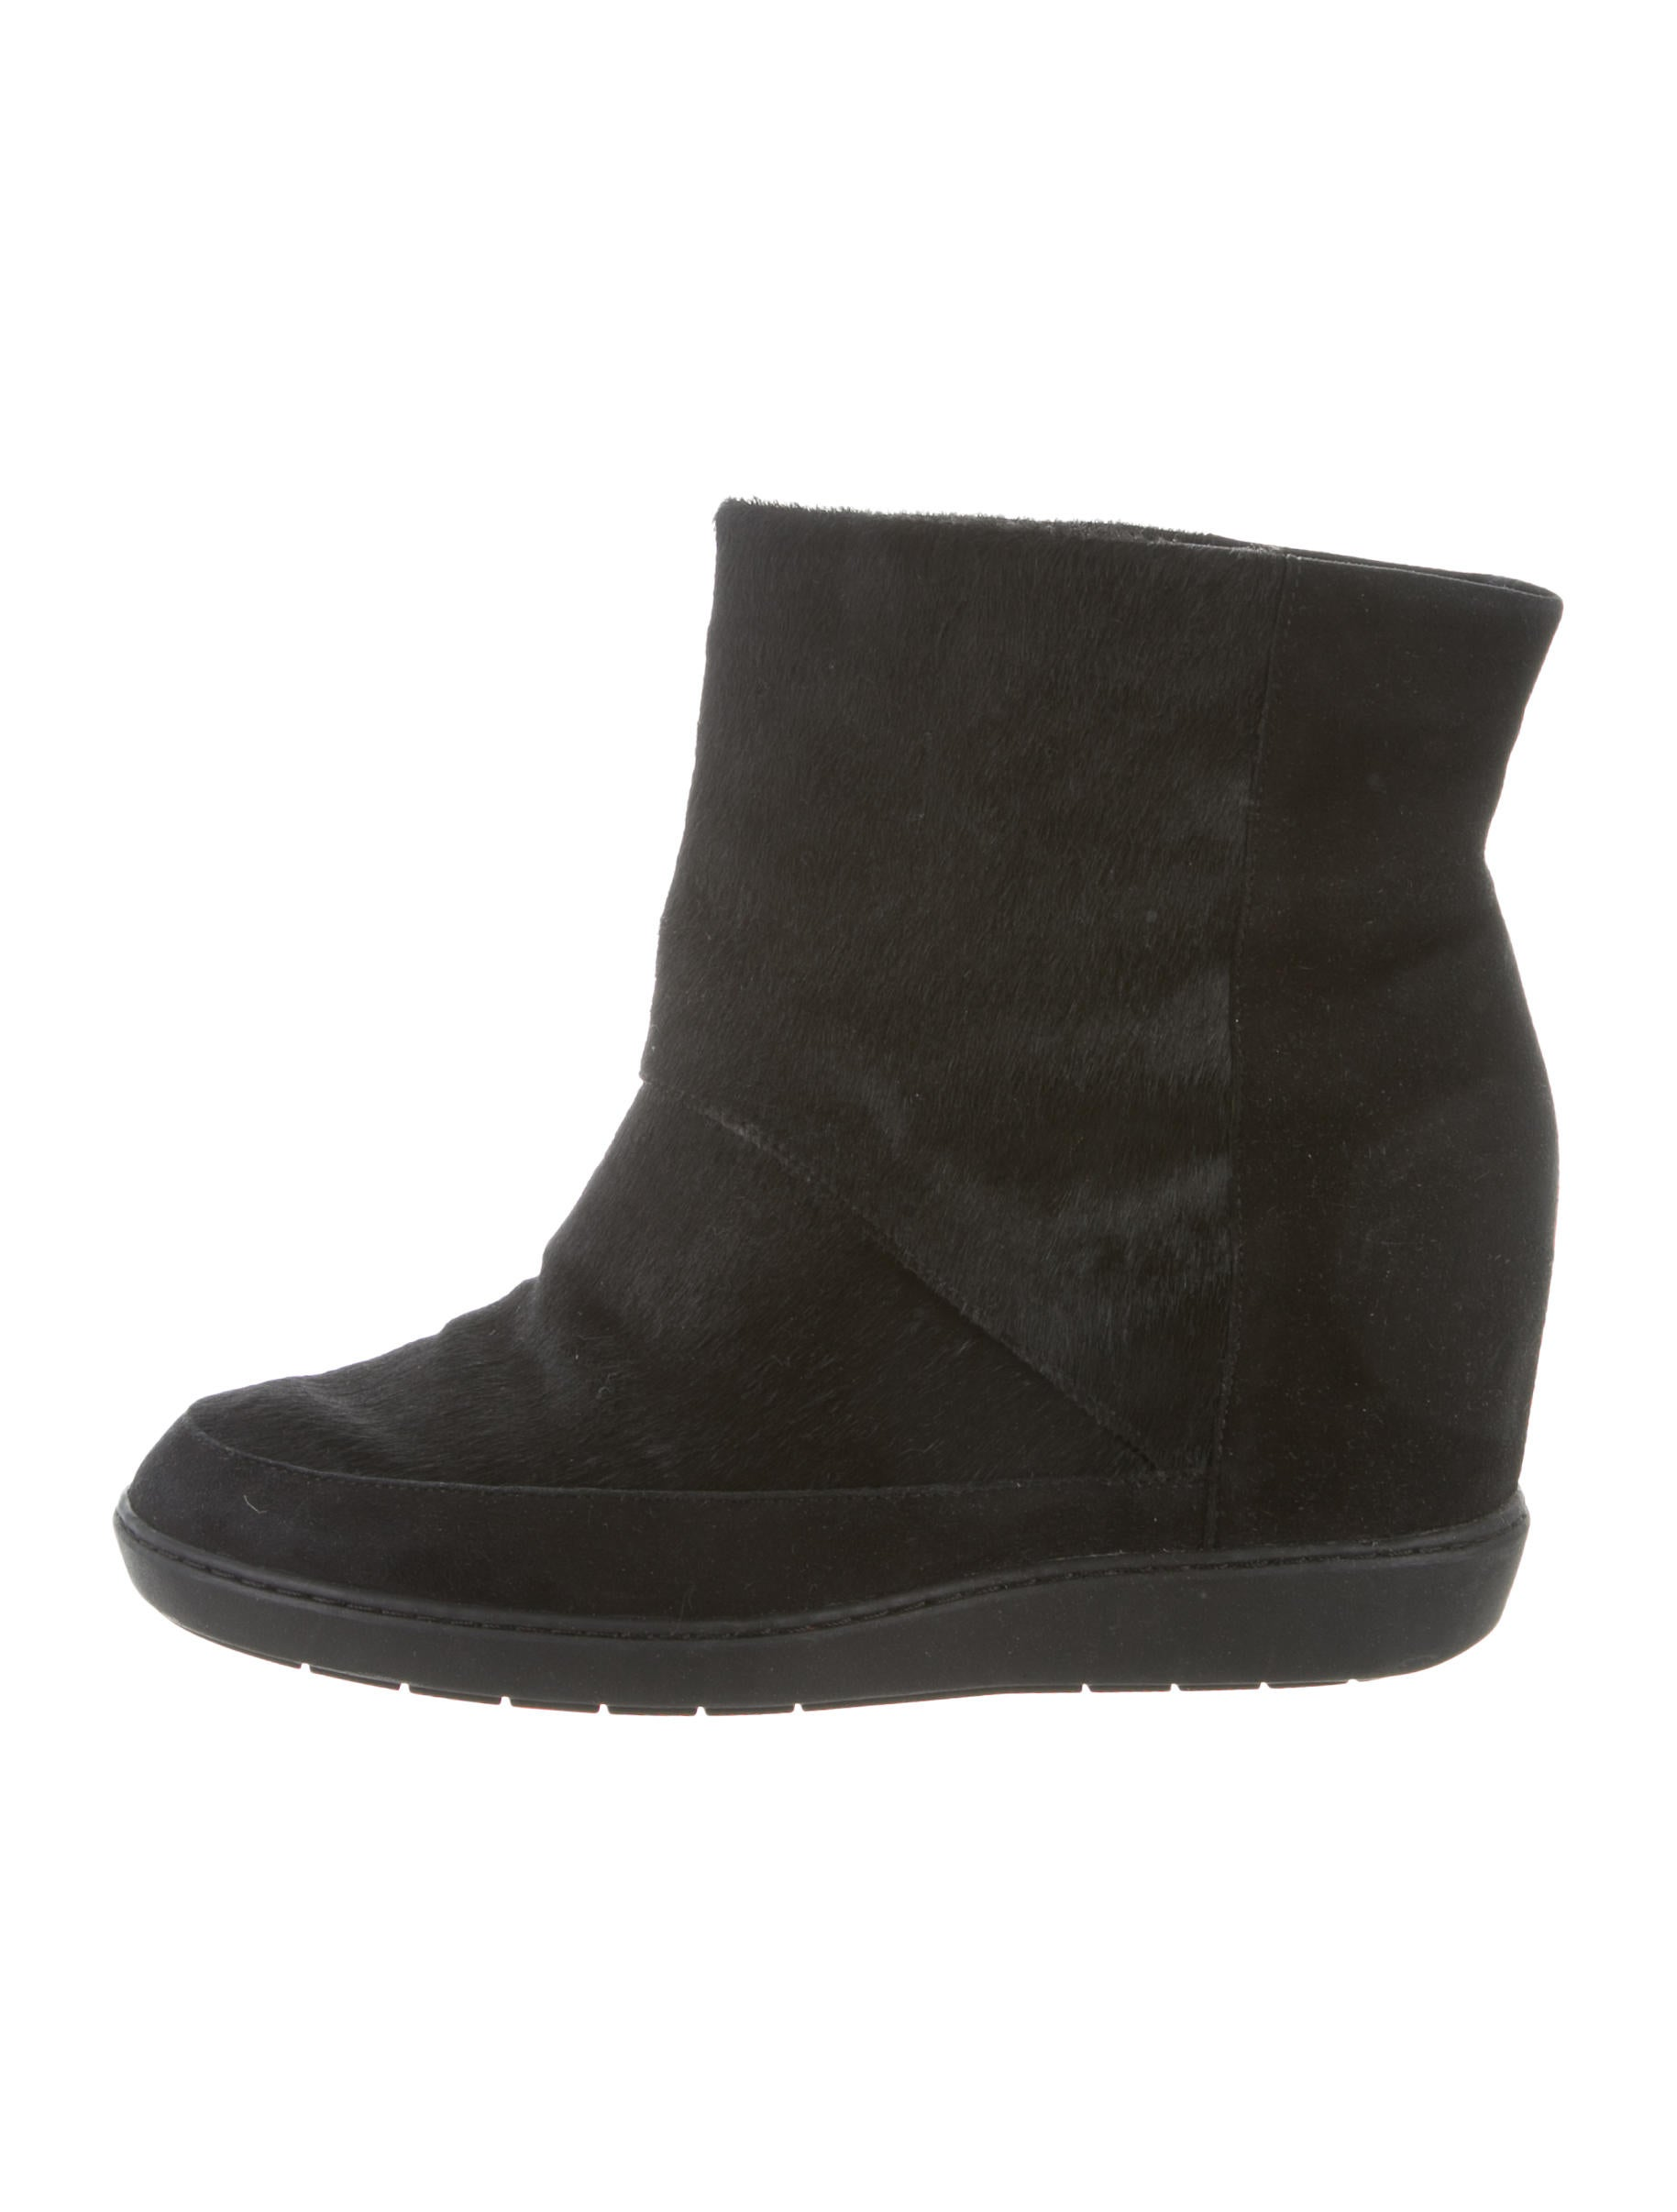 Vince Ponyhair Wedge Boots 100% guaranteed buy cheap shop offer clearance online amazon QYsNTmFY0